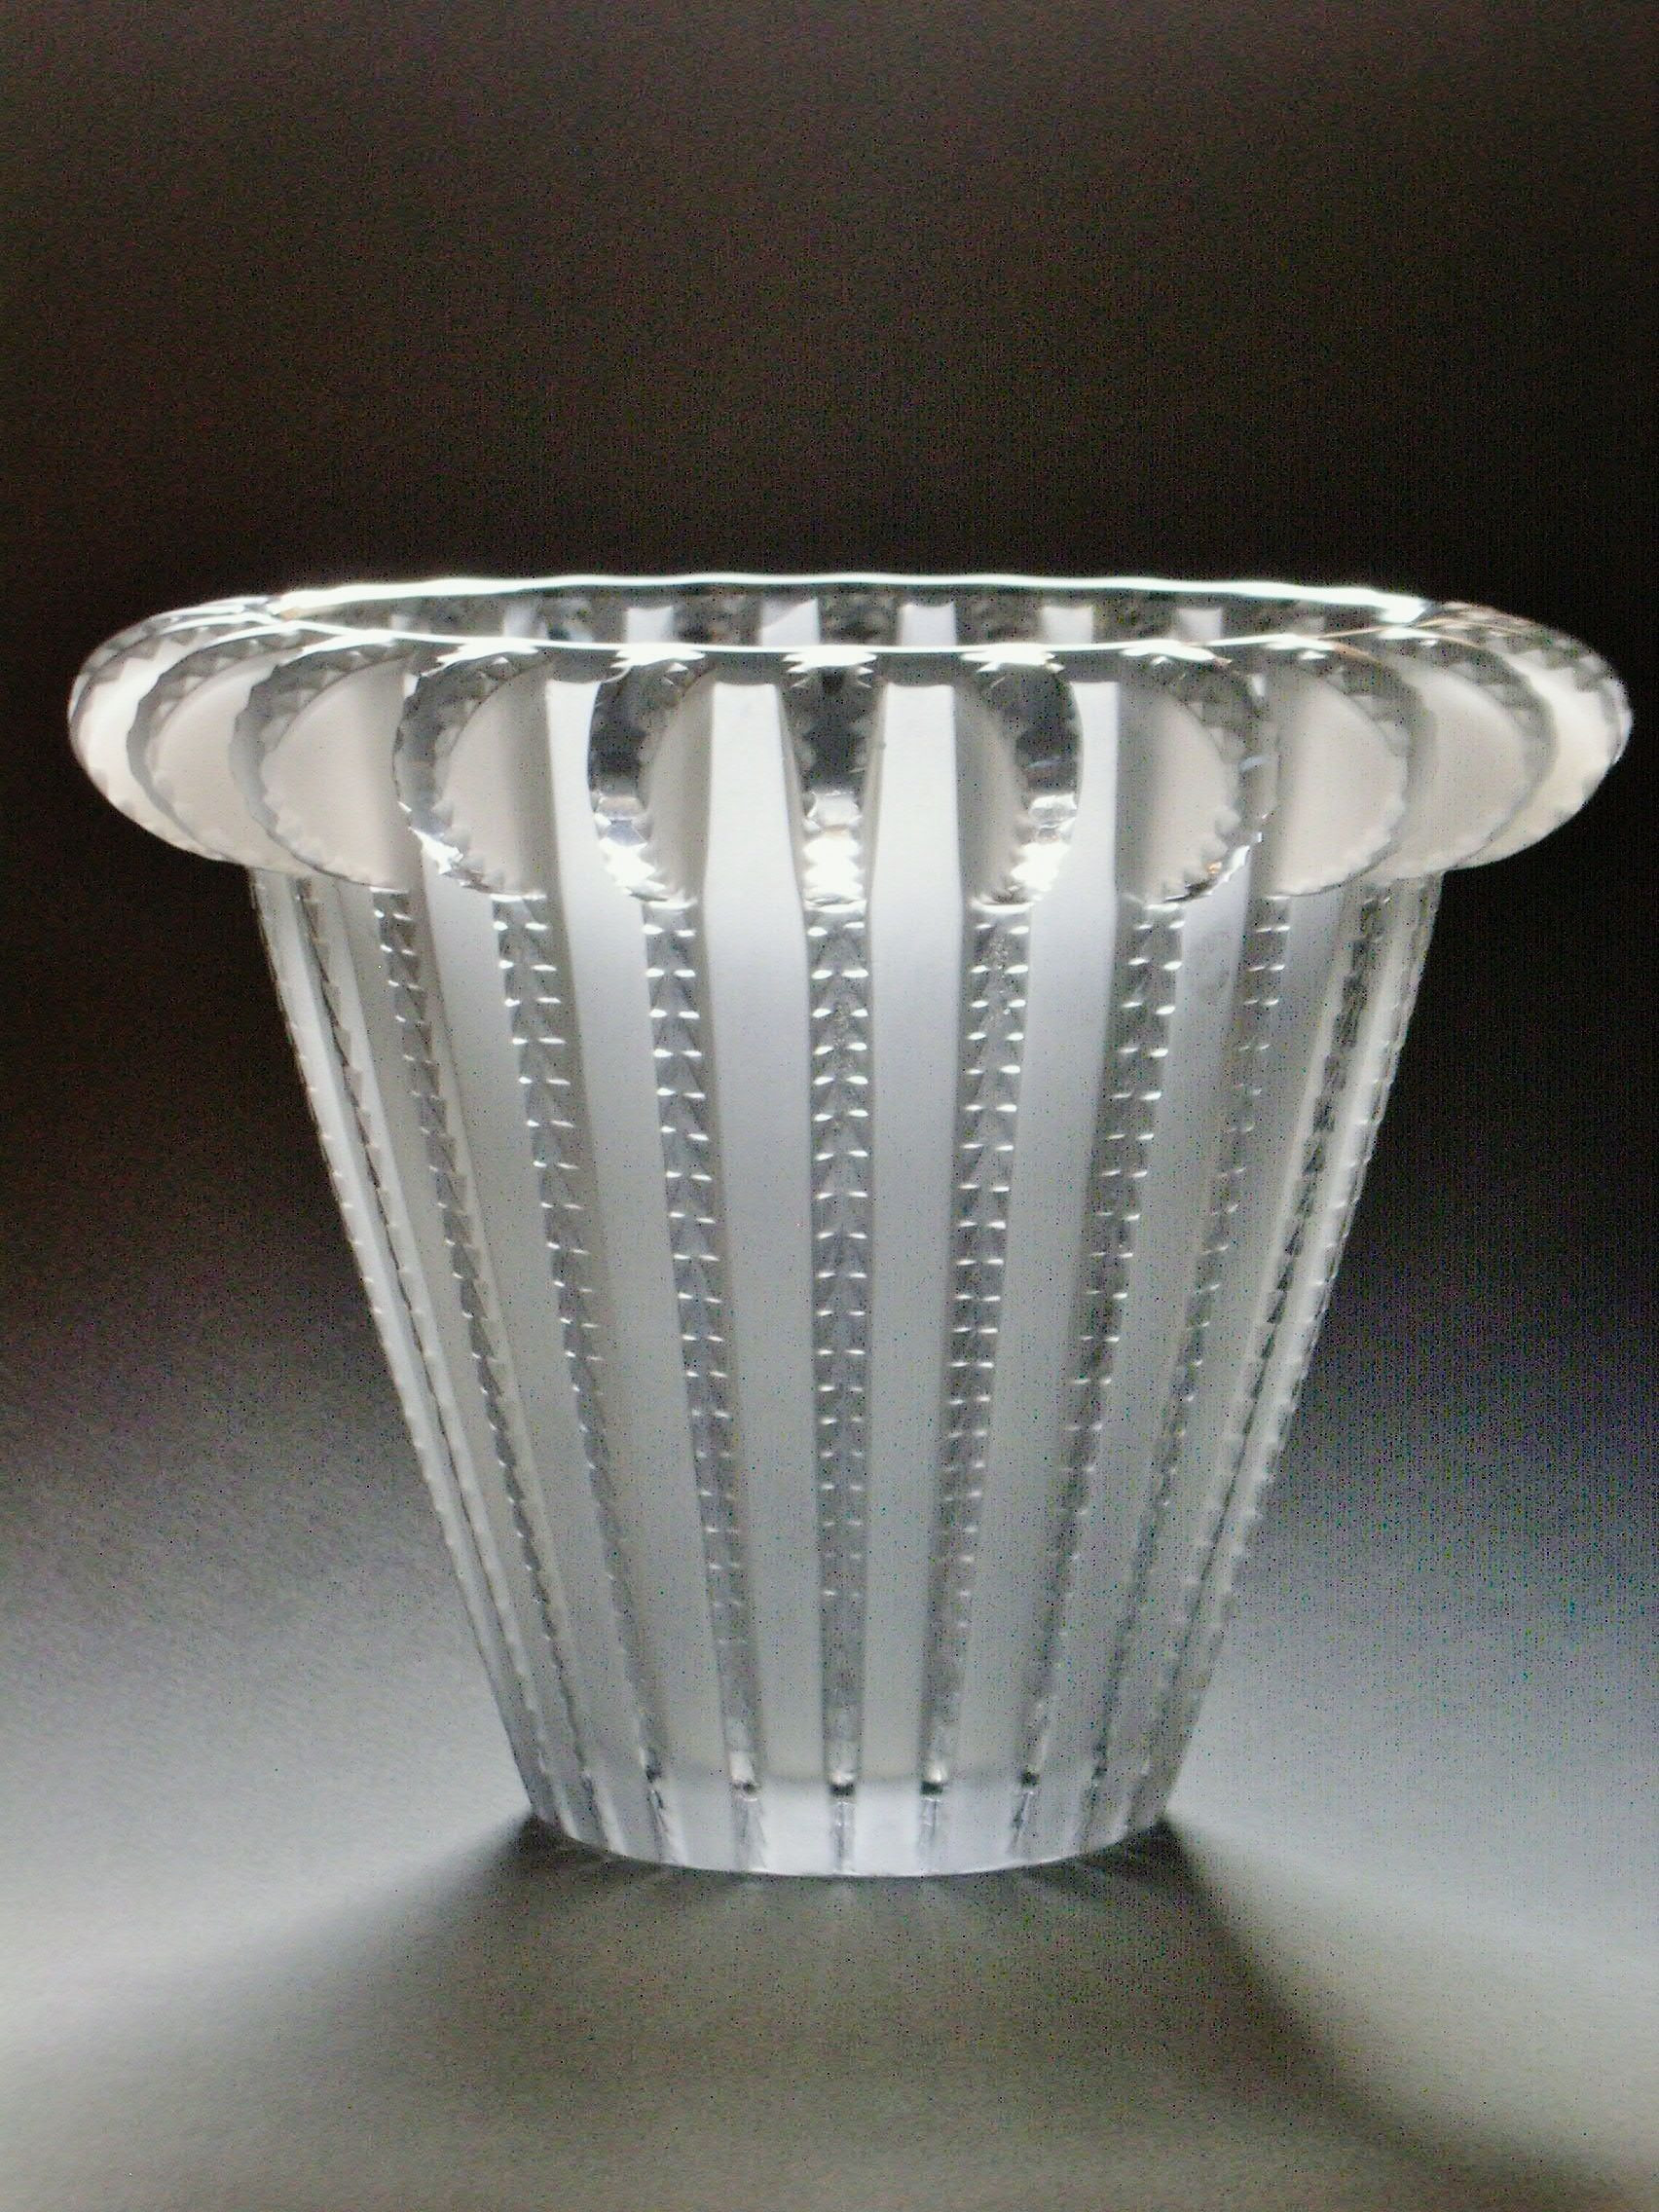 waterford 7 inch vase of 50 smoked glass vase the weekly world within vase royat rene lalique art glass